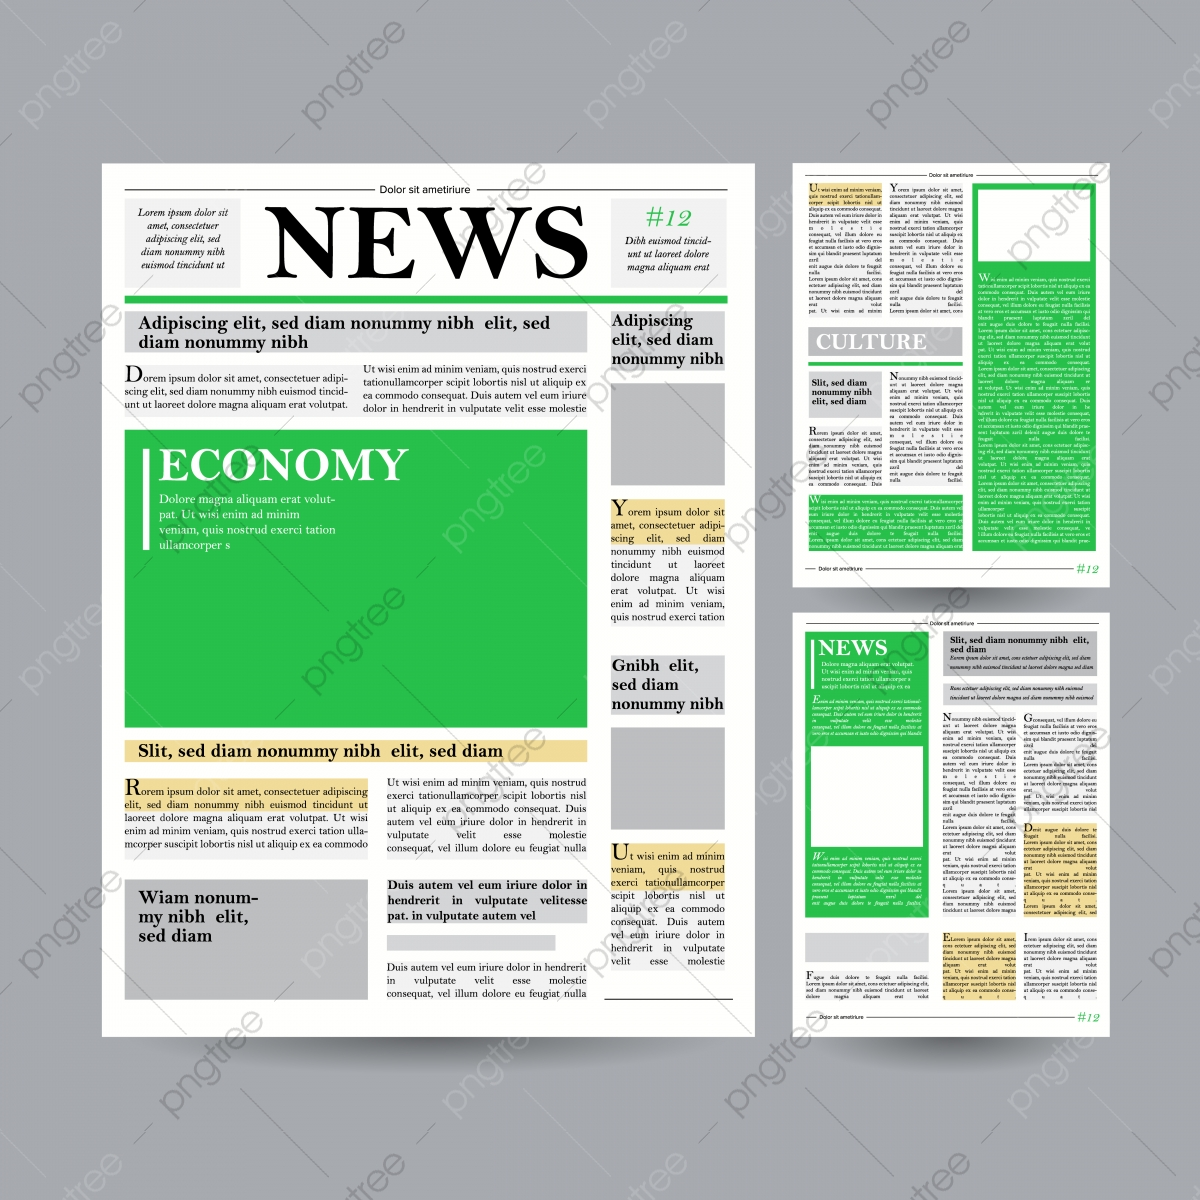 Newspaper Design Template Vector Financial Articles Advertising Business Information World News Economy Headlines Blank Spaces For Images Isolated Illustration Newspaper Mockup Design Png And Vector With Transparent Background For Free Download